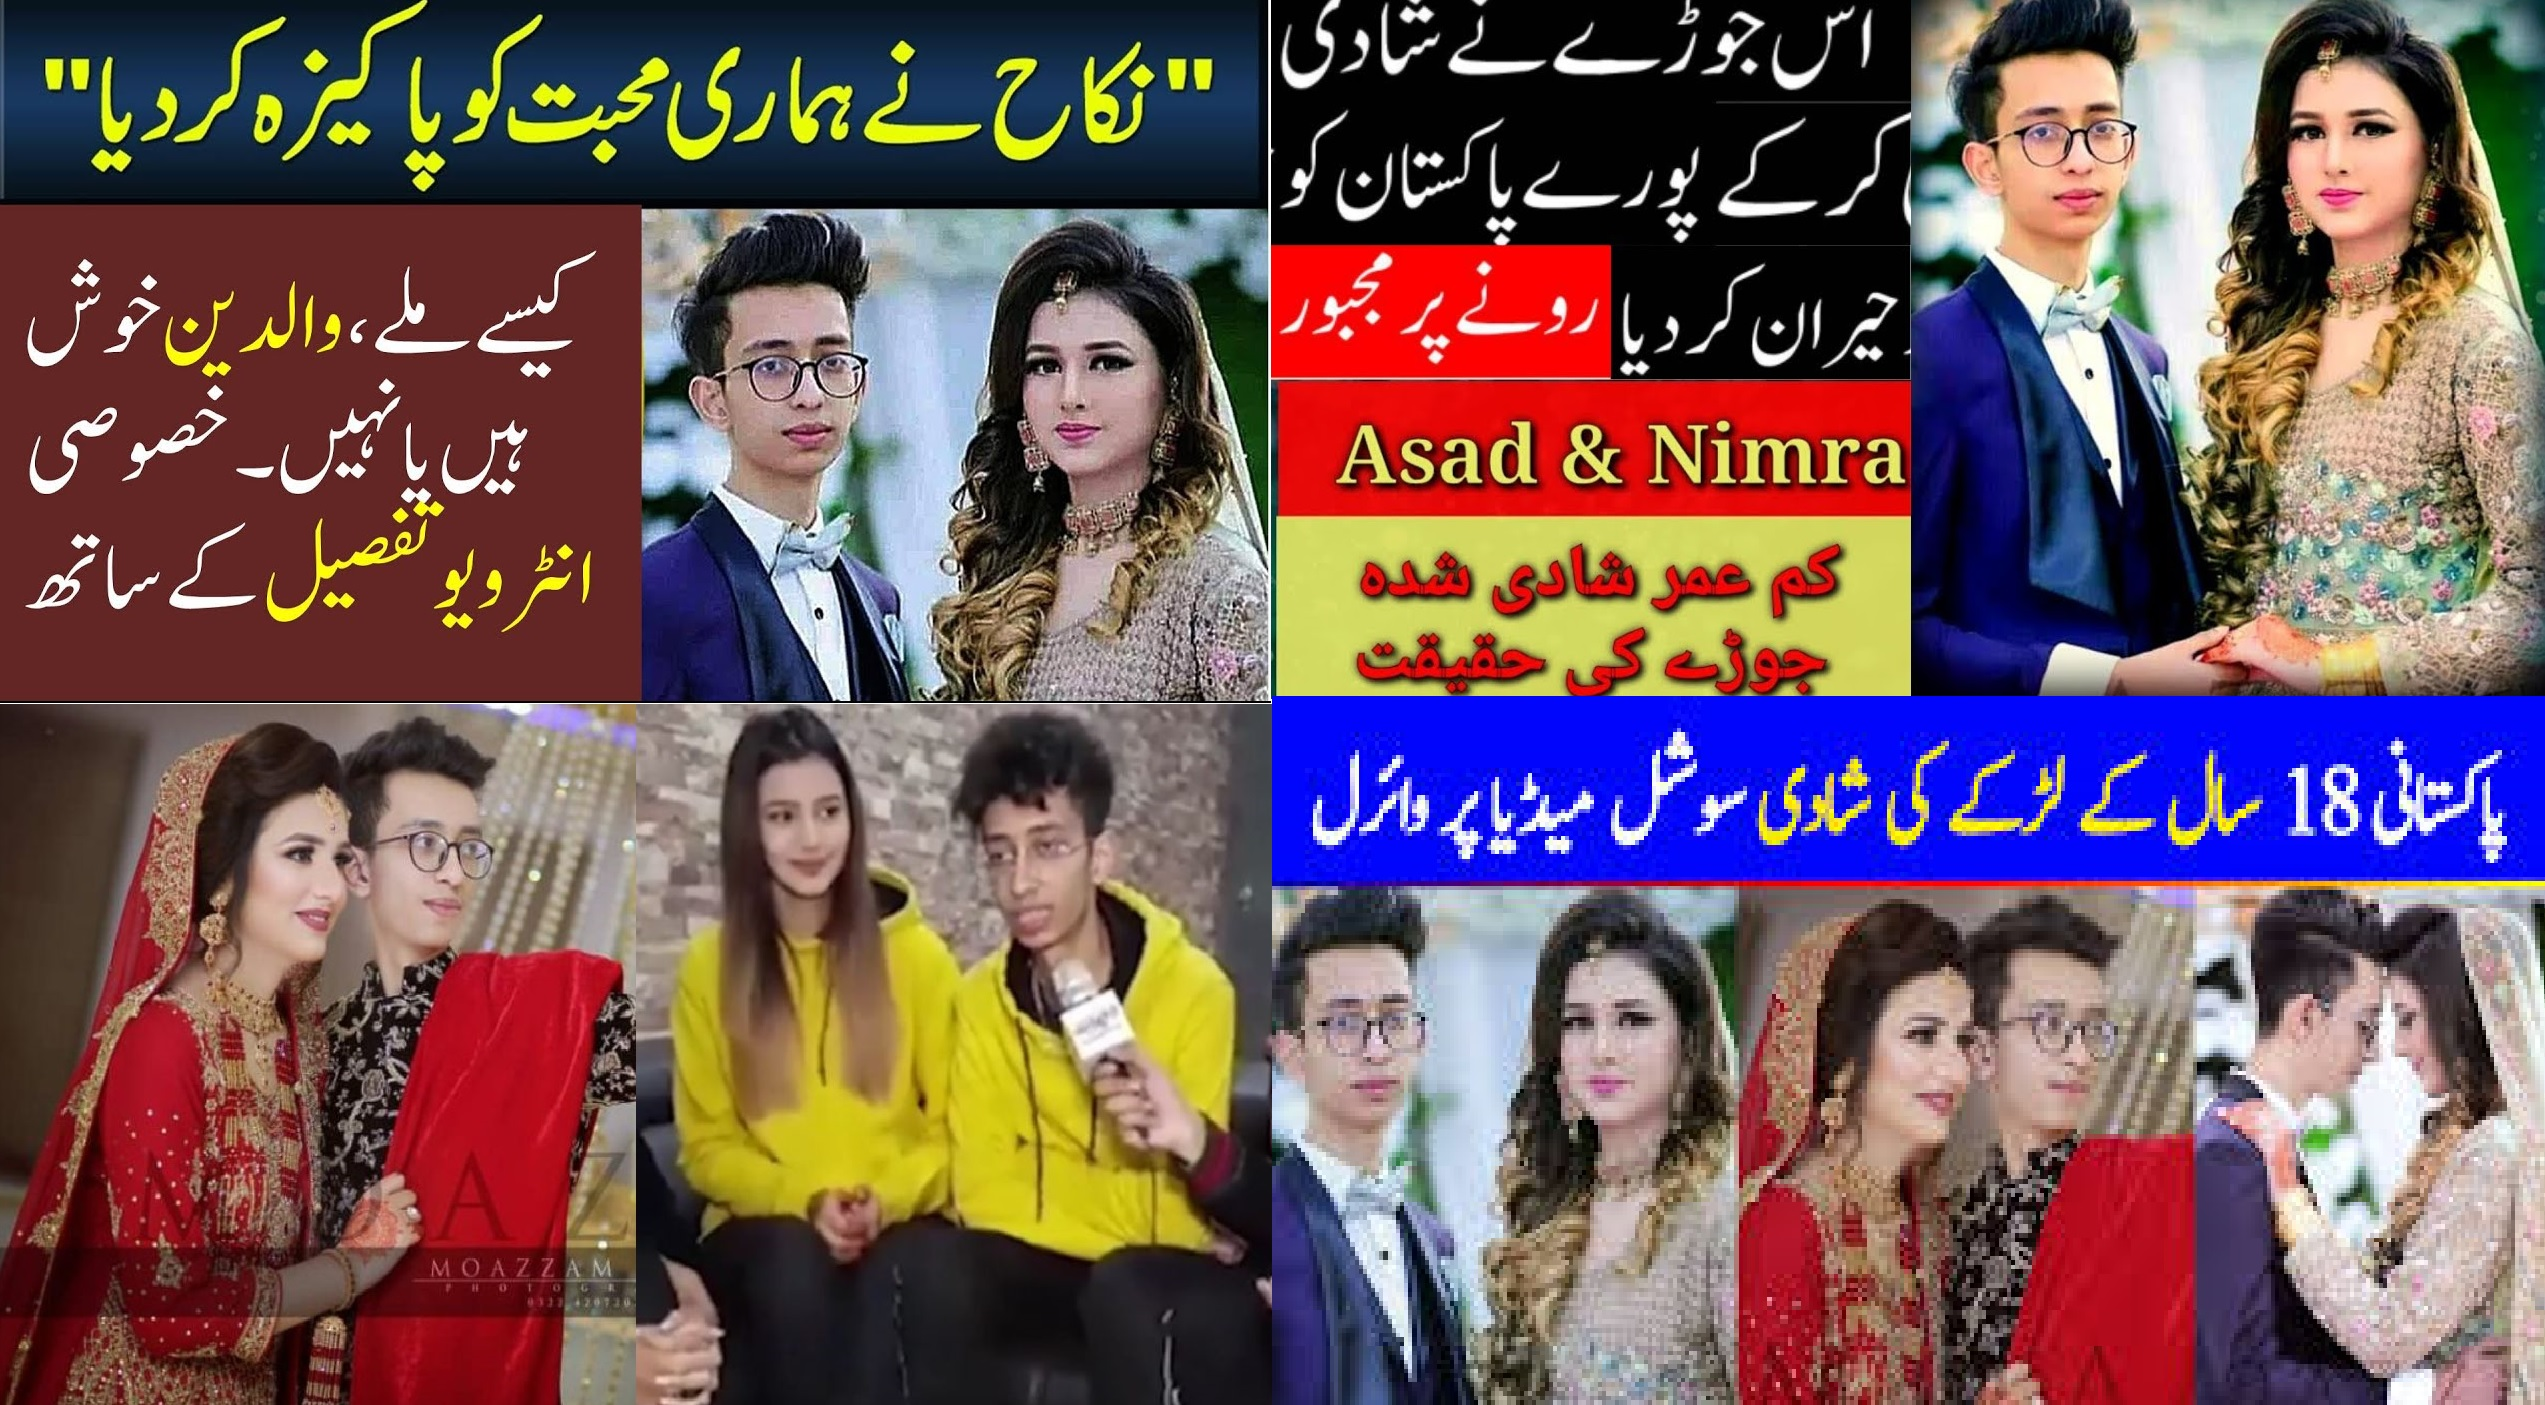 Social Media Viral Young Couple Asad and Nimra Merriage Clicks